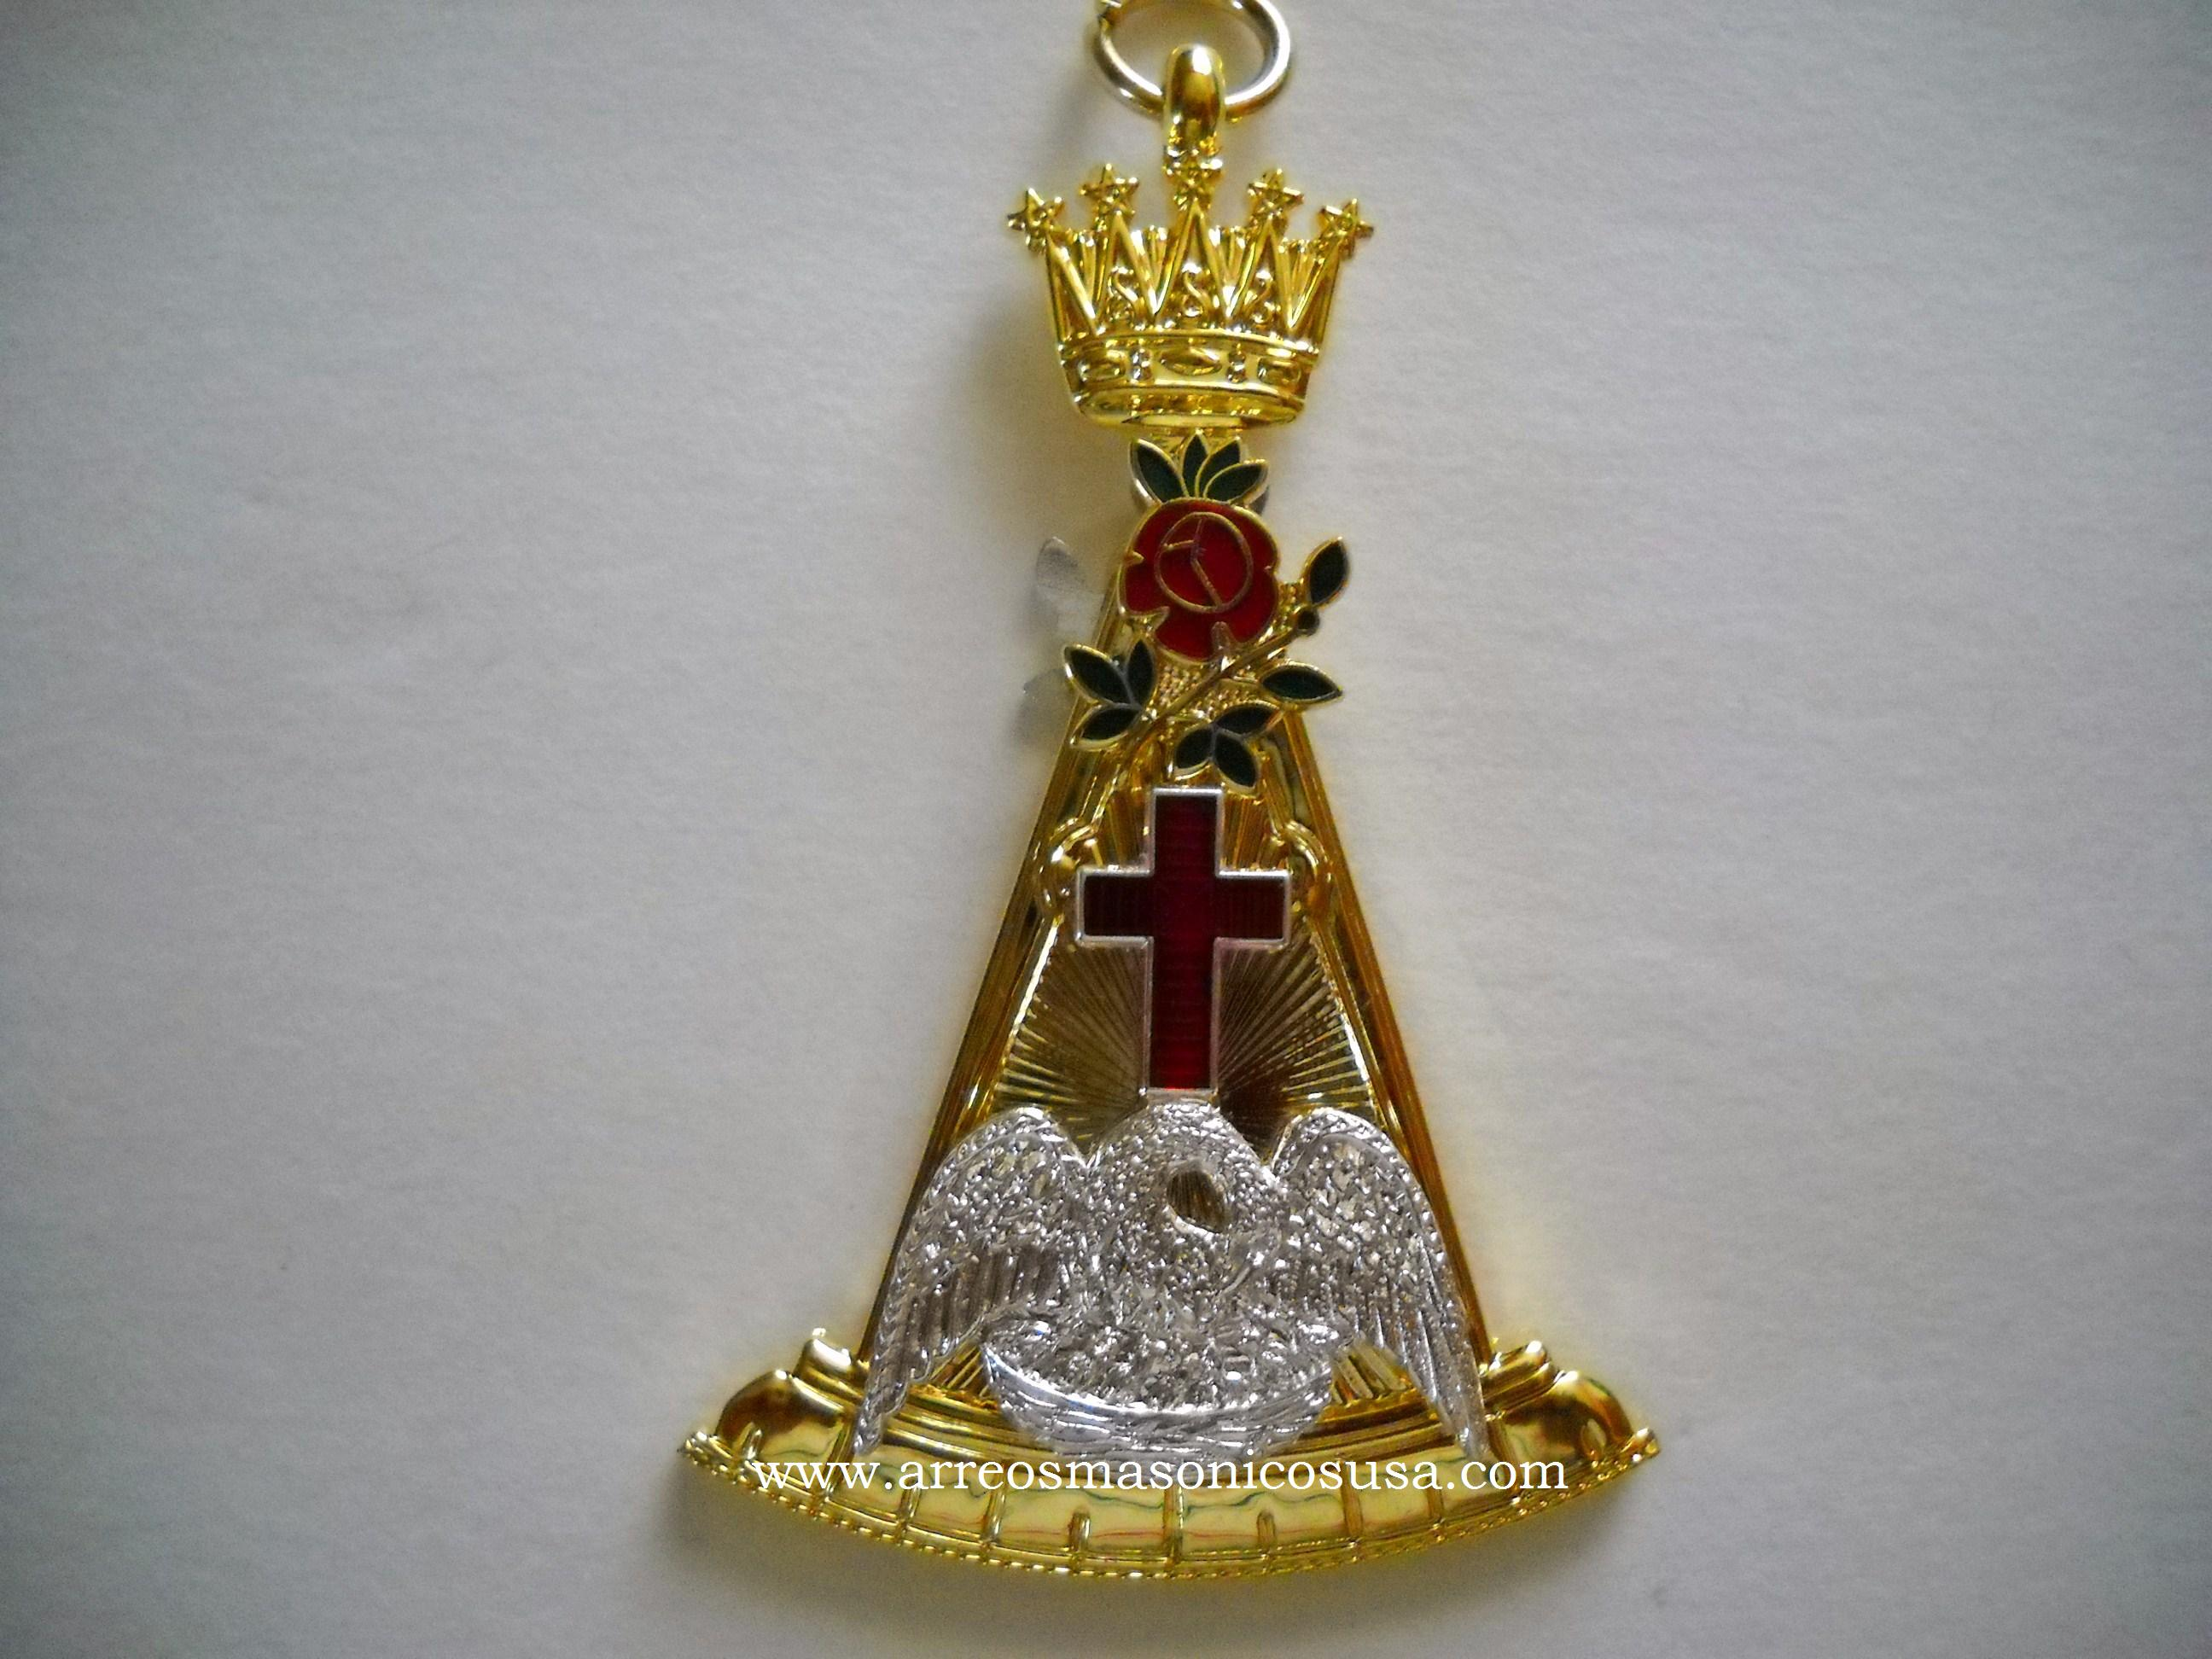 Knight rose croix 18th degree jewel